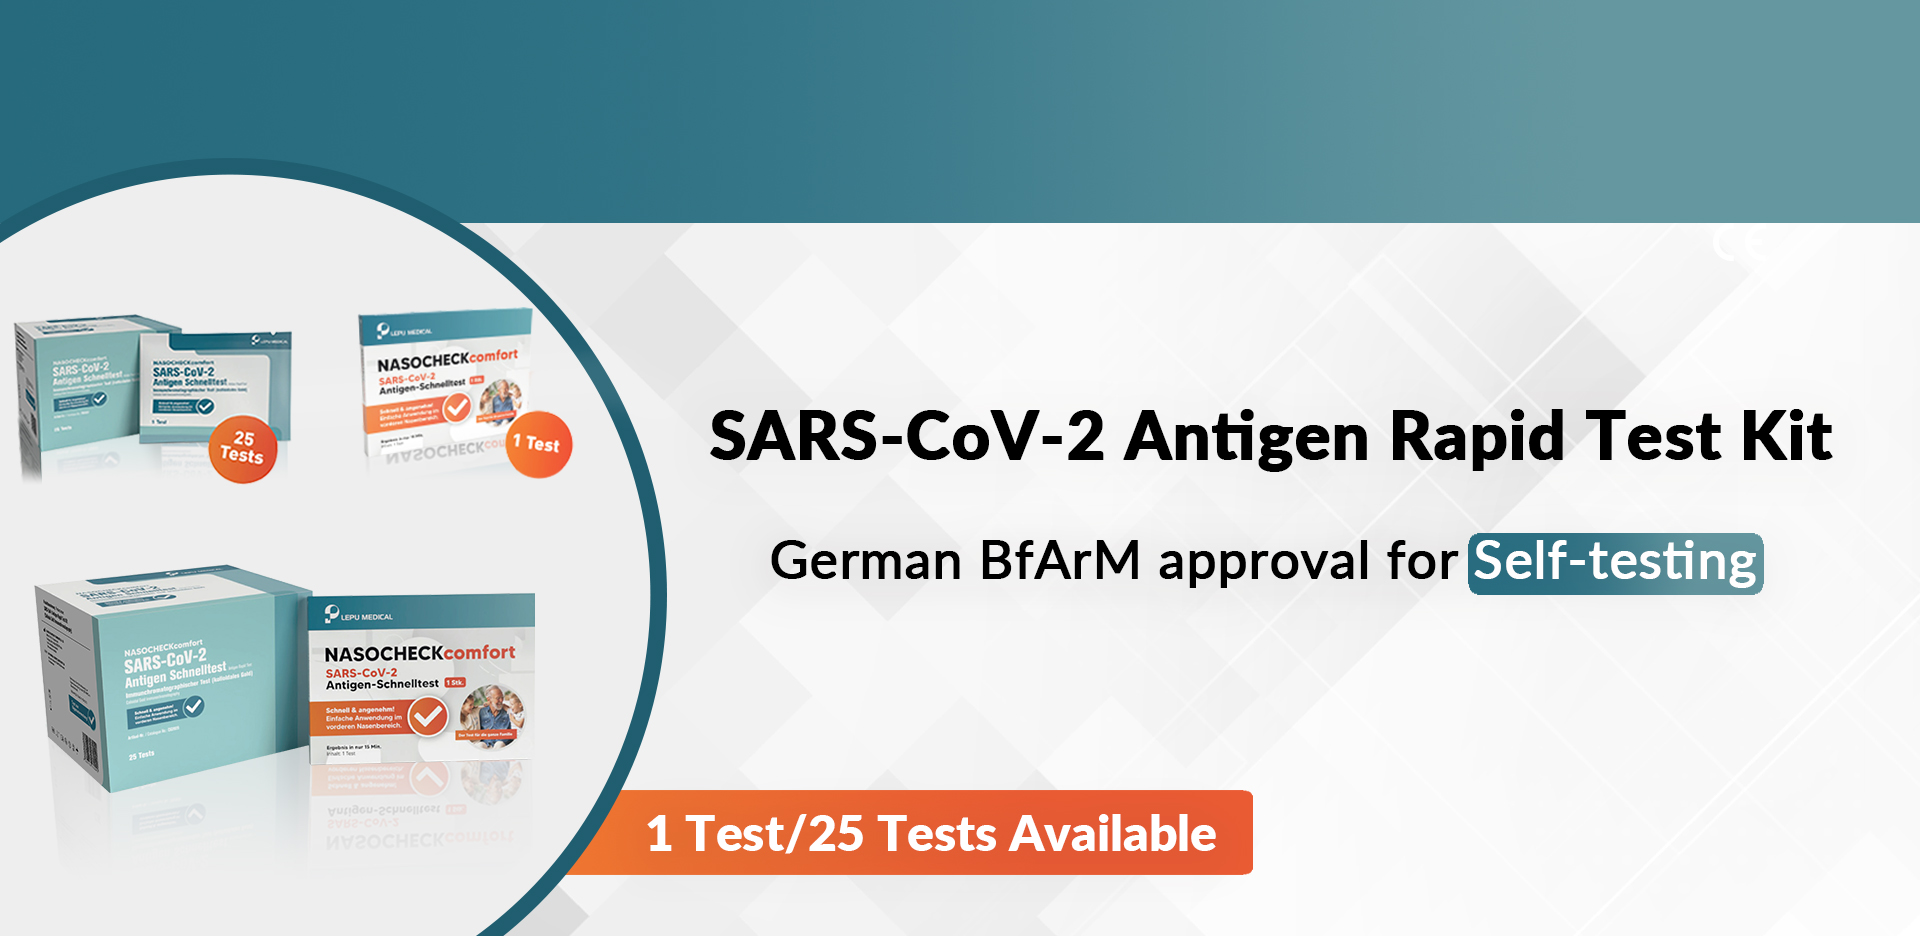 SARS-CoV-2 Antigen Rapid Test Kit(German BfArM approval for self-testing)